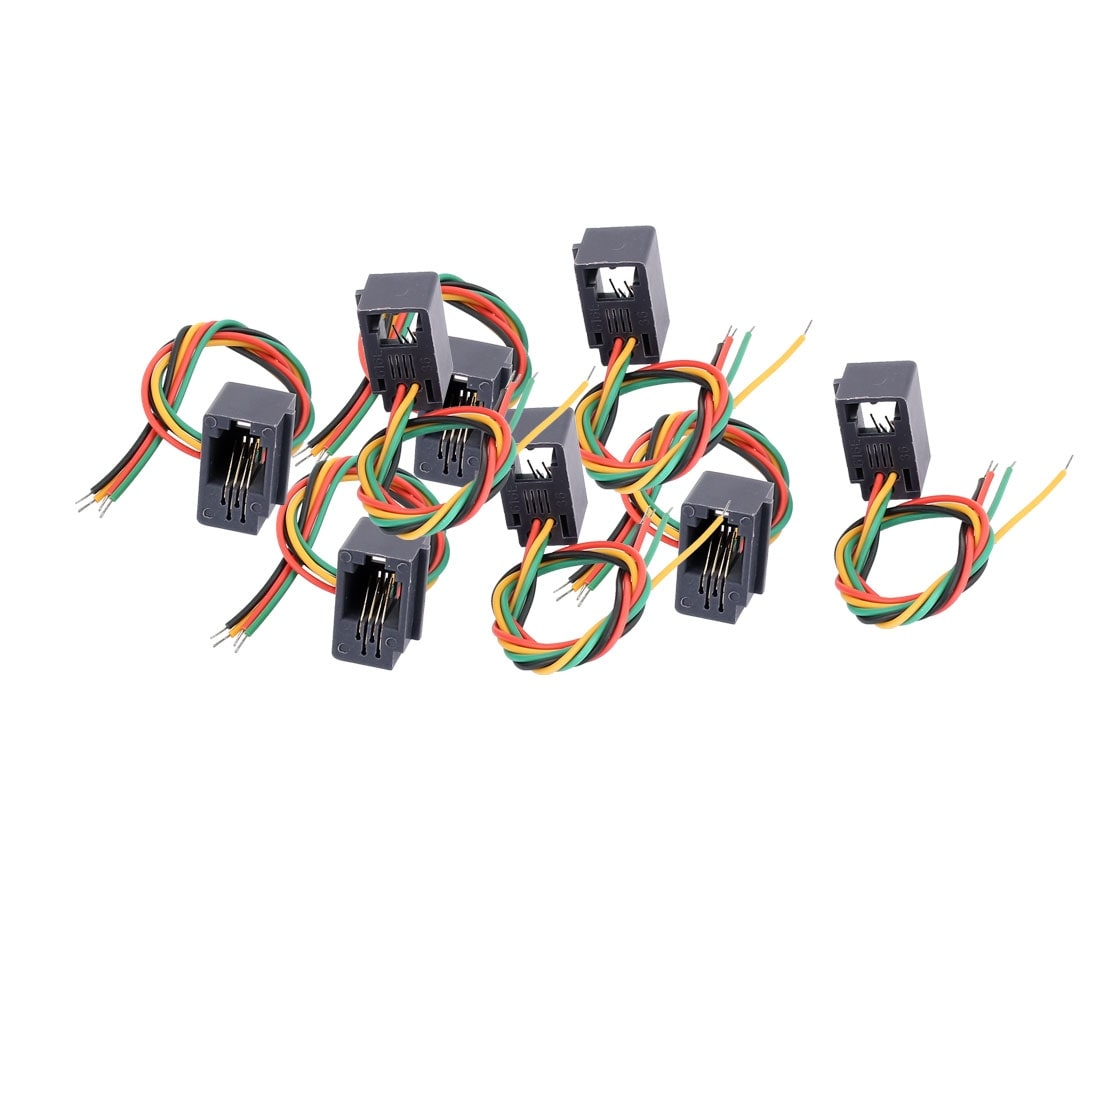 Shop Unique Bargains 4p4c 616e 4 Colorful Wires Wired Modular Female Wiring Telephone Cable Connector 8 Pcs On Sale Free Shipping Orders Over 45